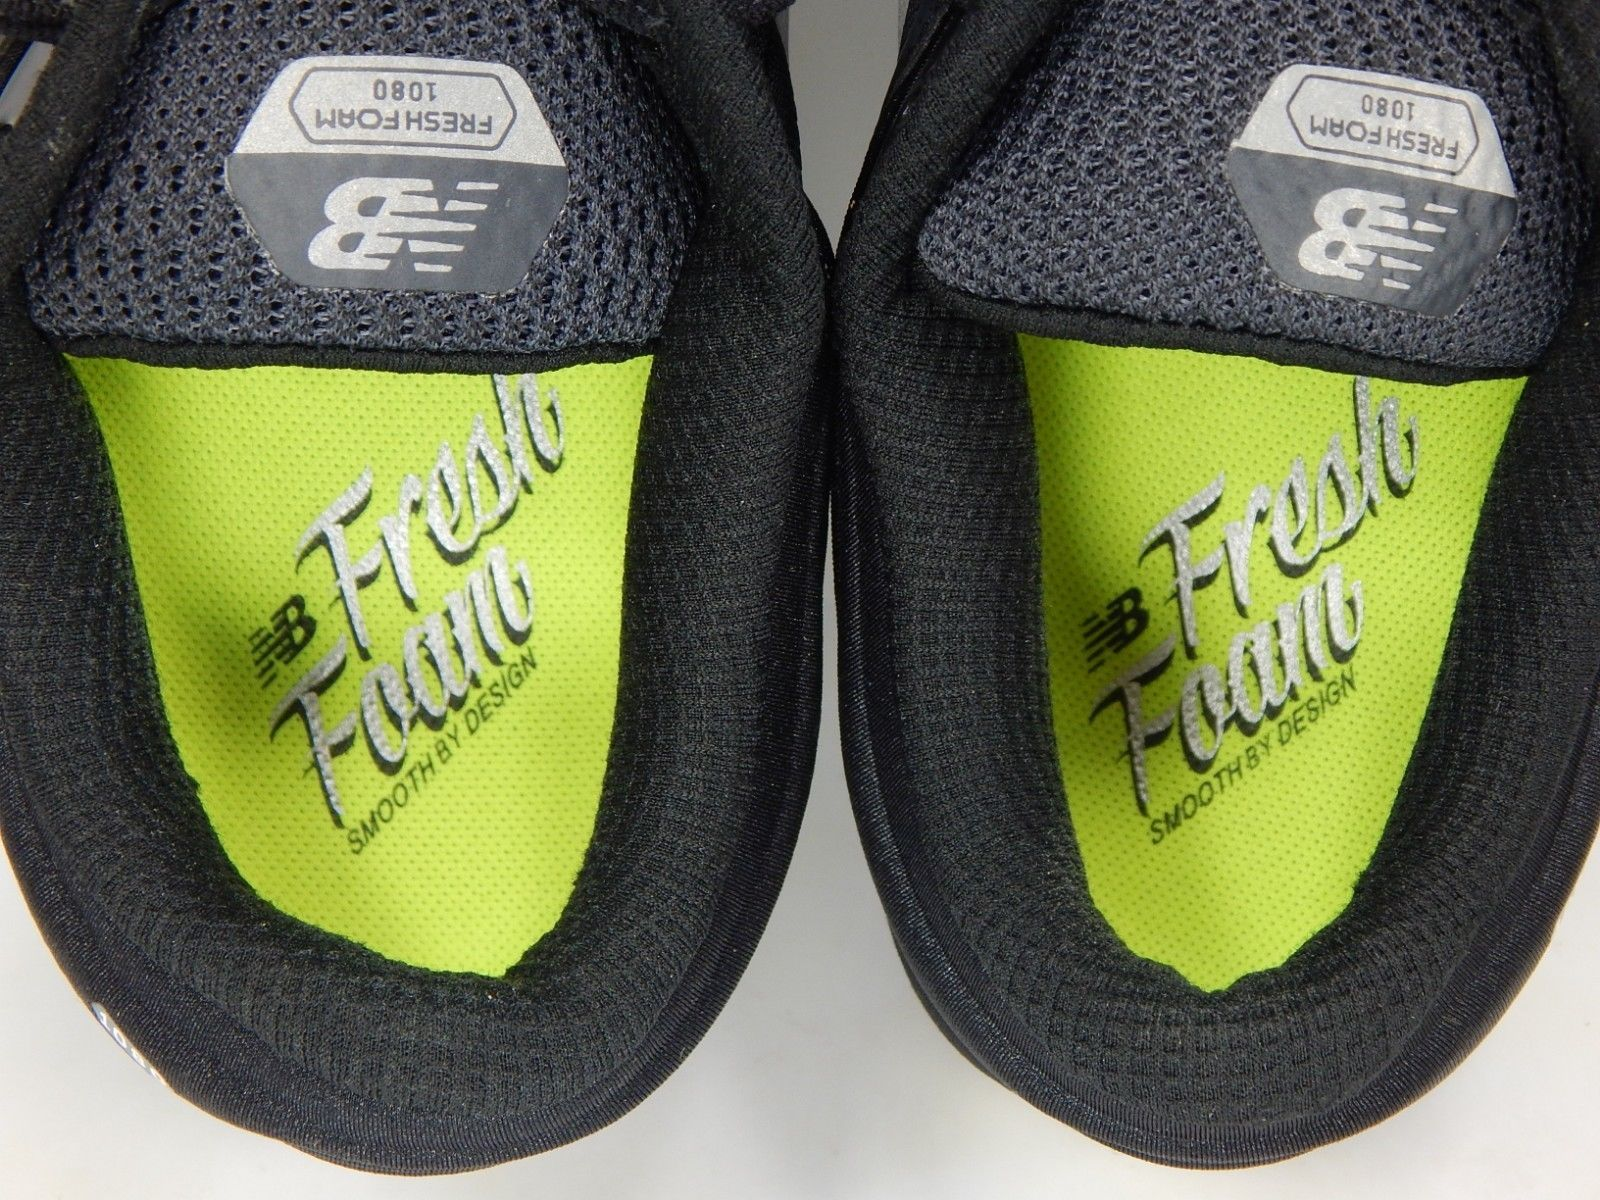 11e2d5fc47d7e New Balance 1080 v8 Size 13 4E EXTRA WIDE EU 47.5 Men's Running Shoes  M1080BW8